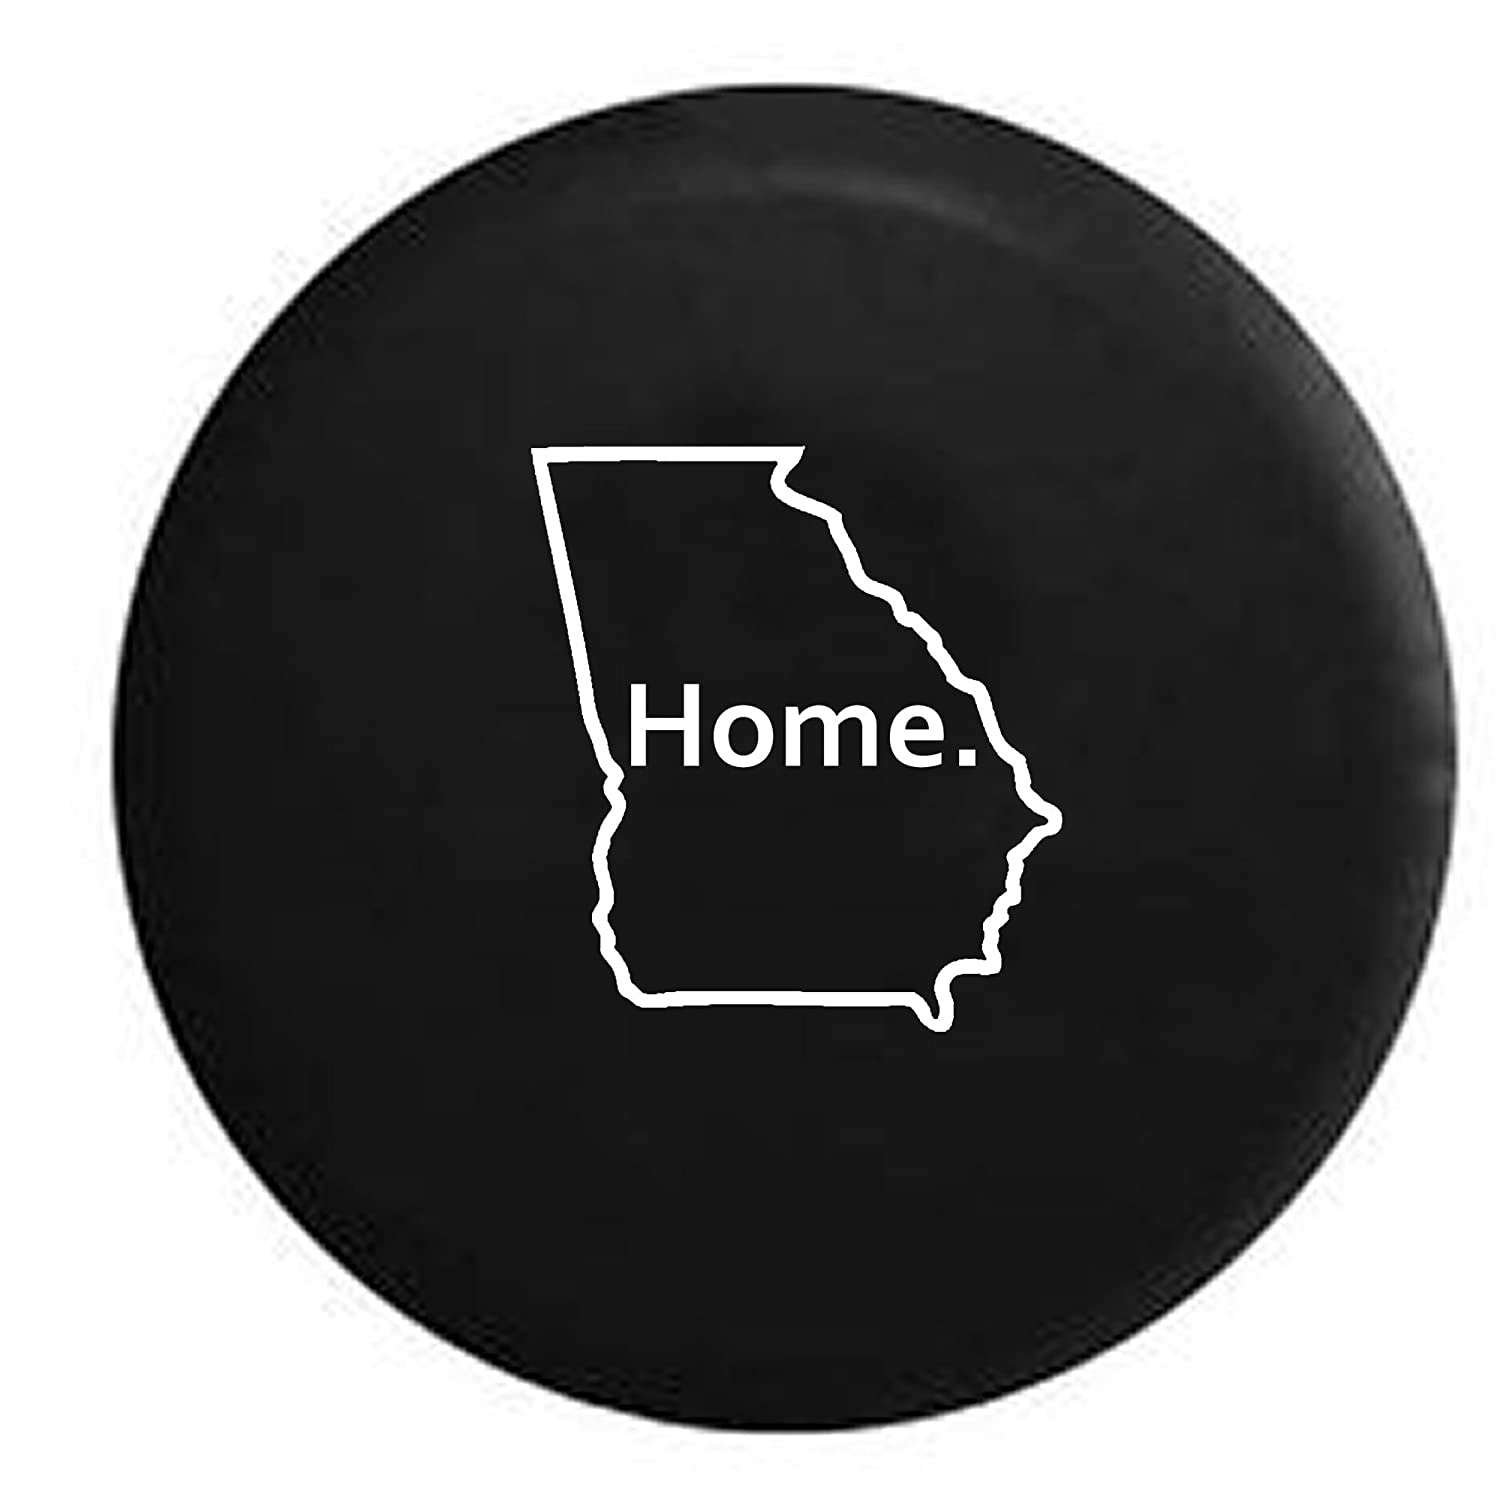 Georgia Peach Home Edition Spare Tire Cover Vinyl Black 33 in American Unlimited Gear